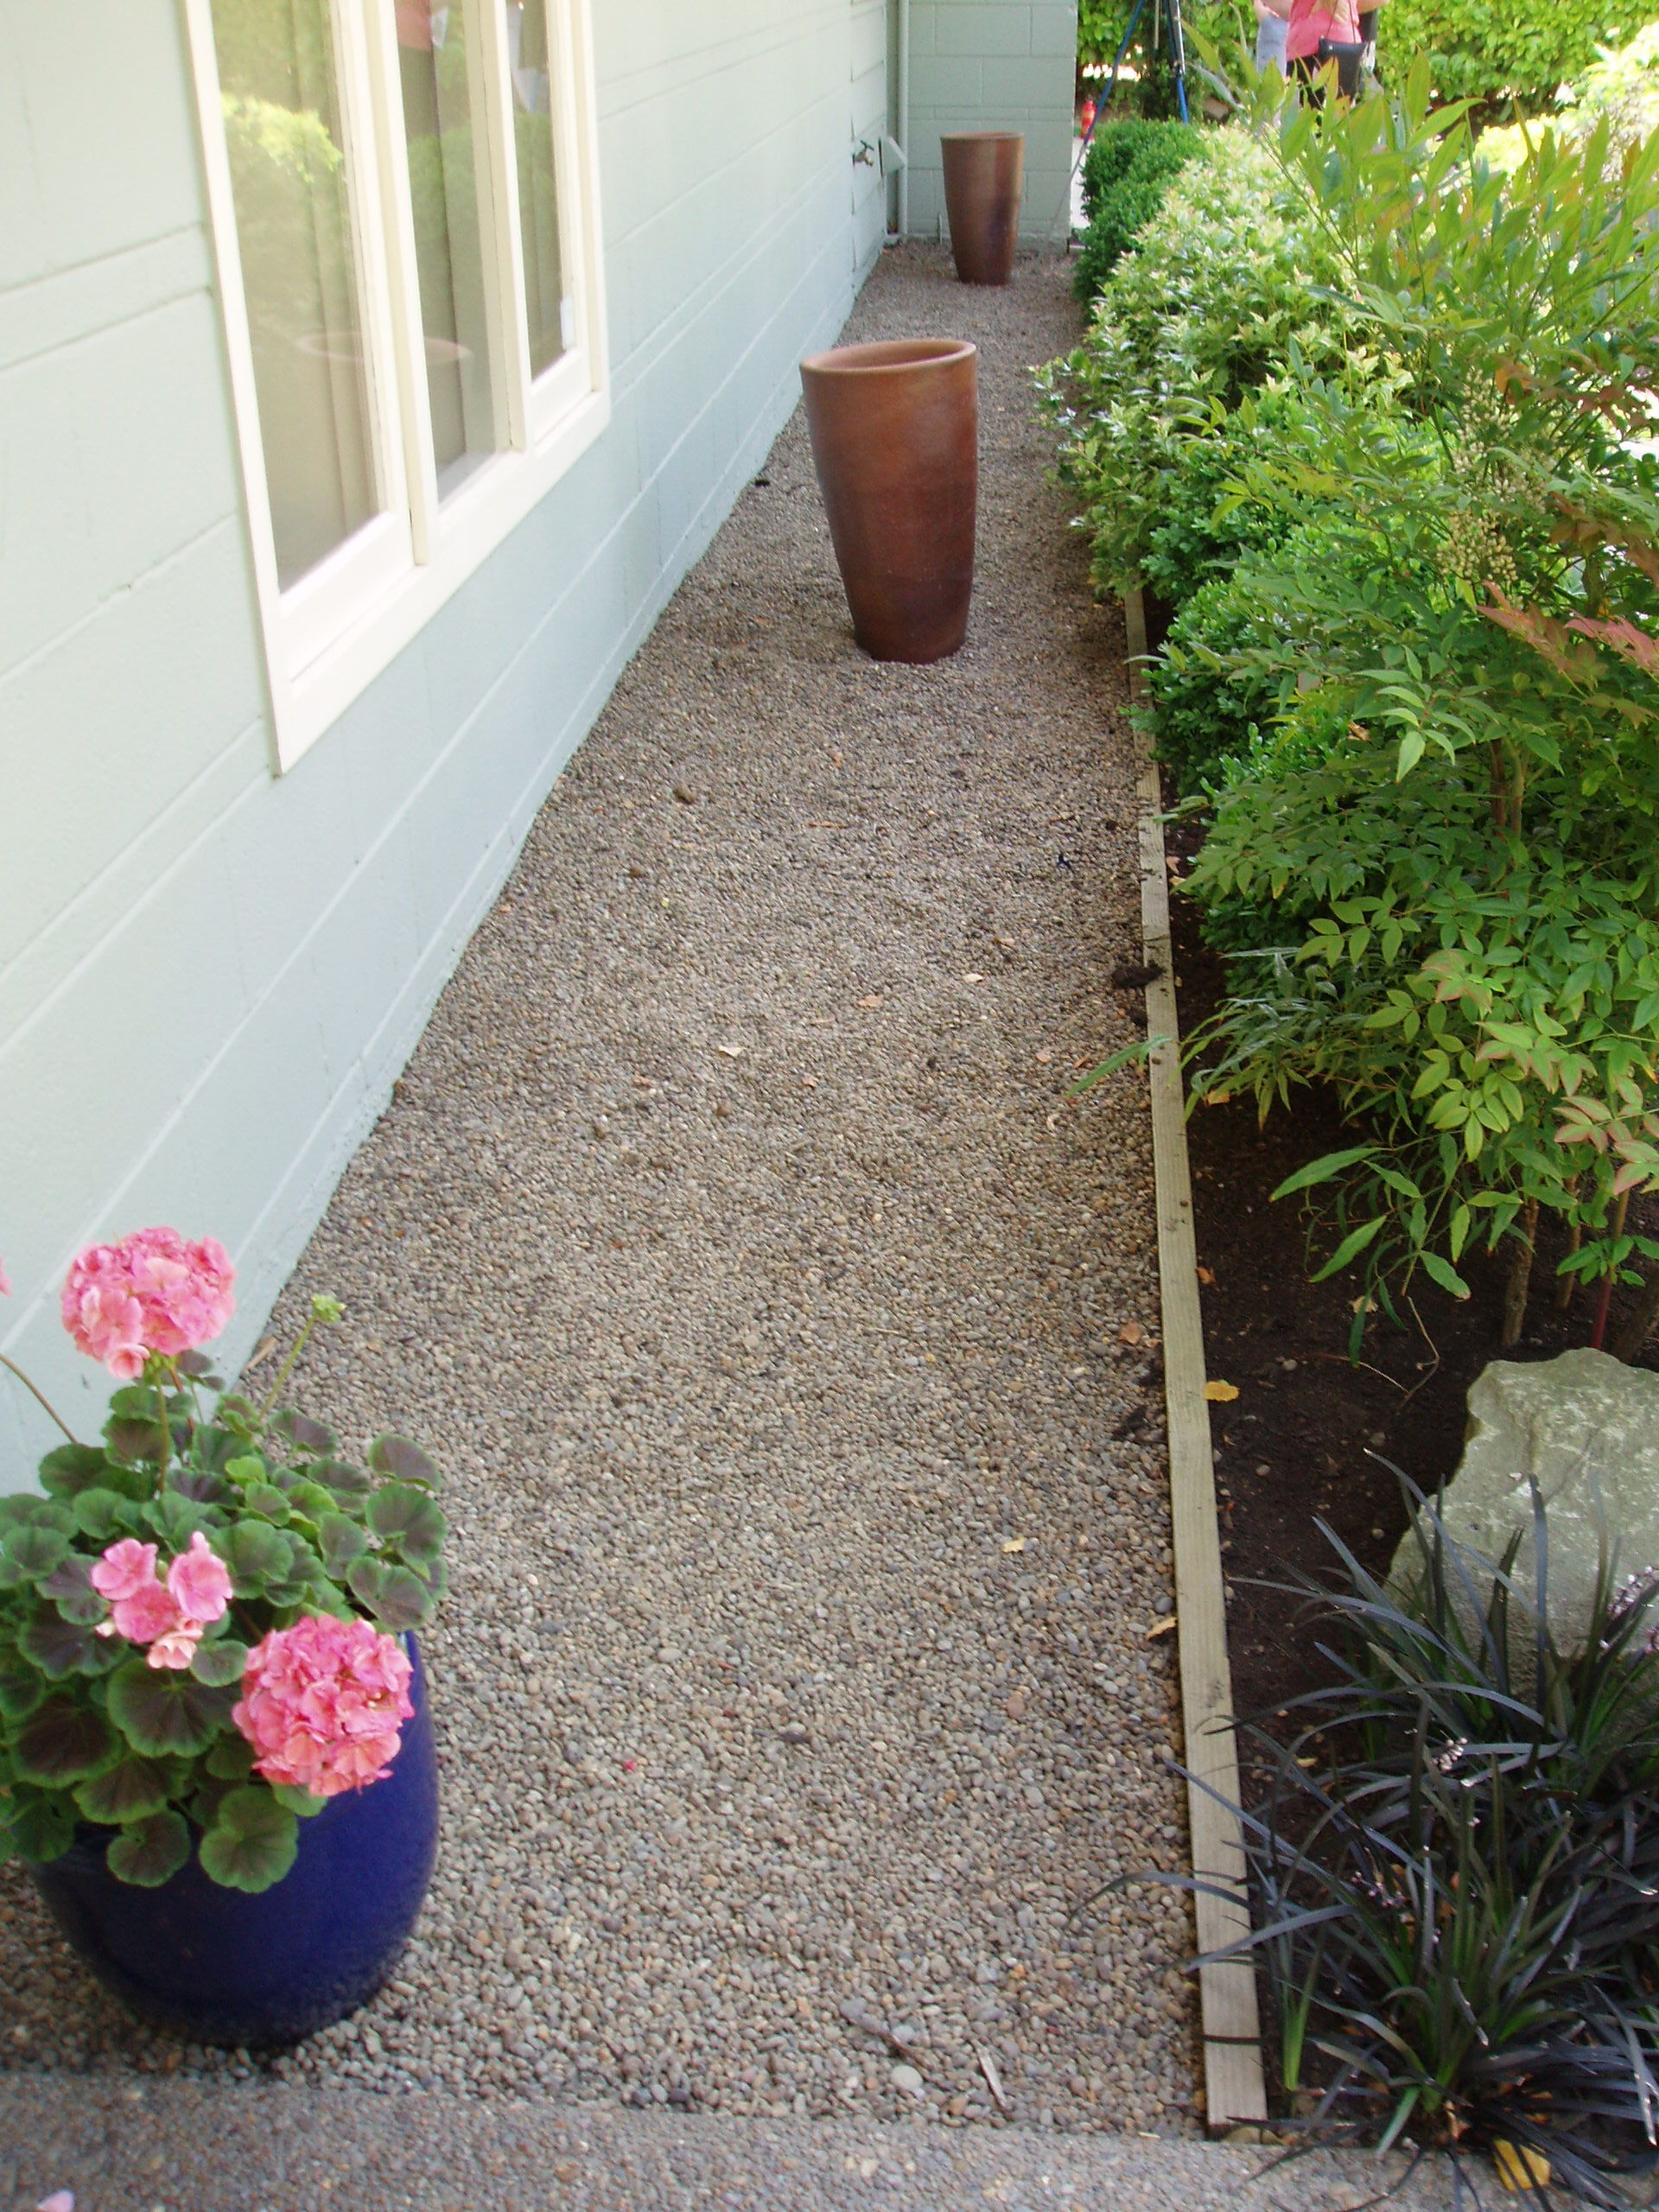 Gravel along foundation | Gravel path, Landscaping ideas and Gardens